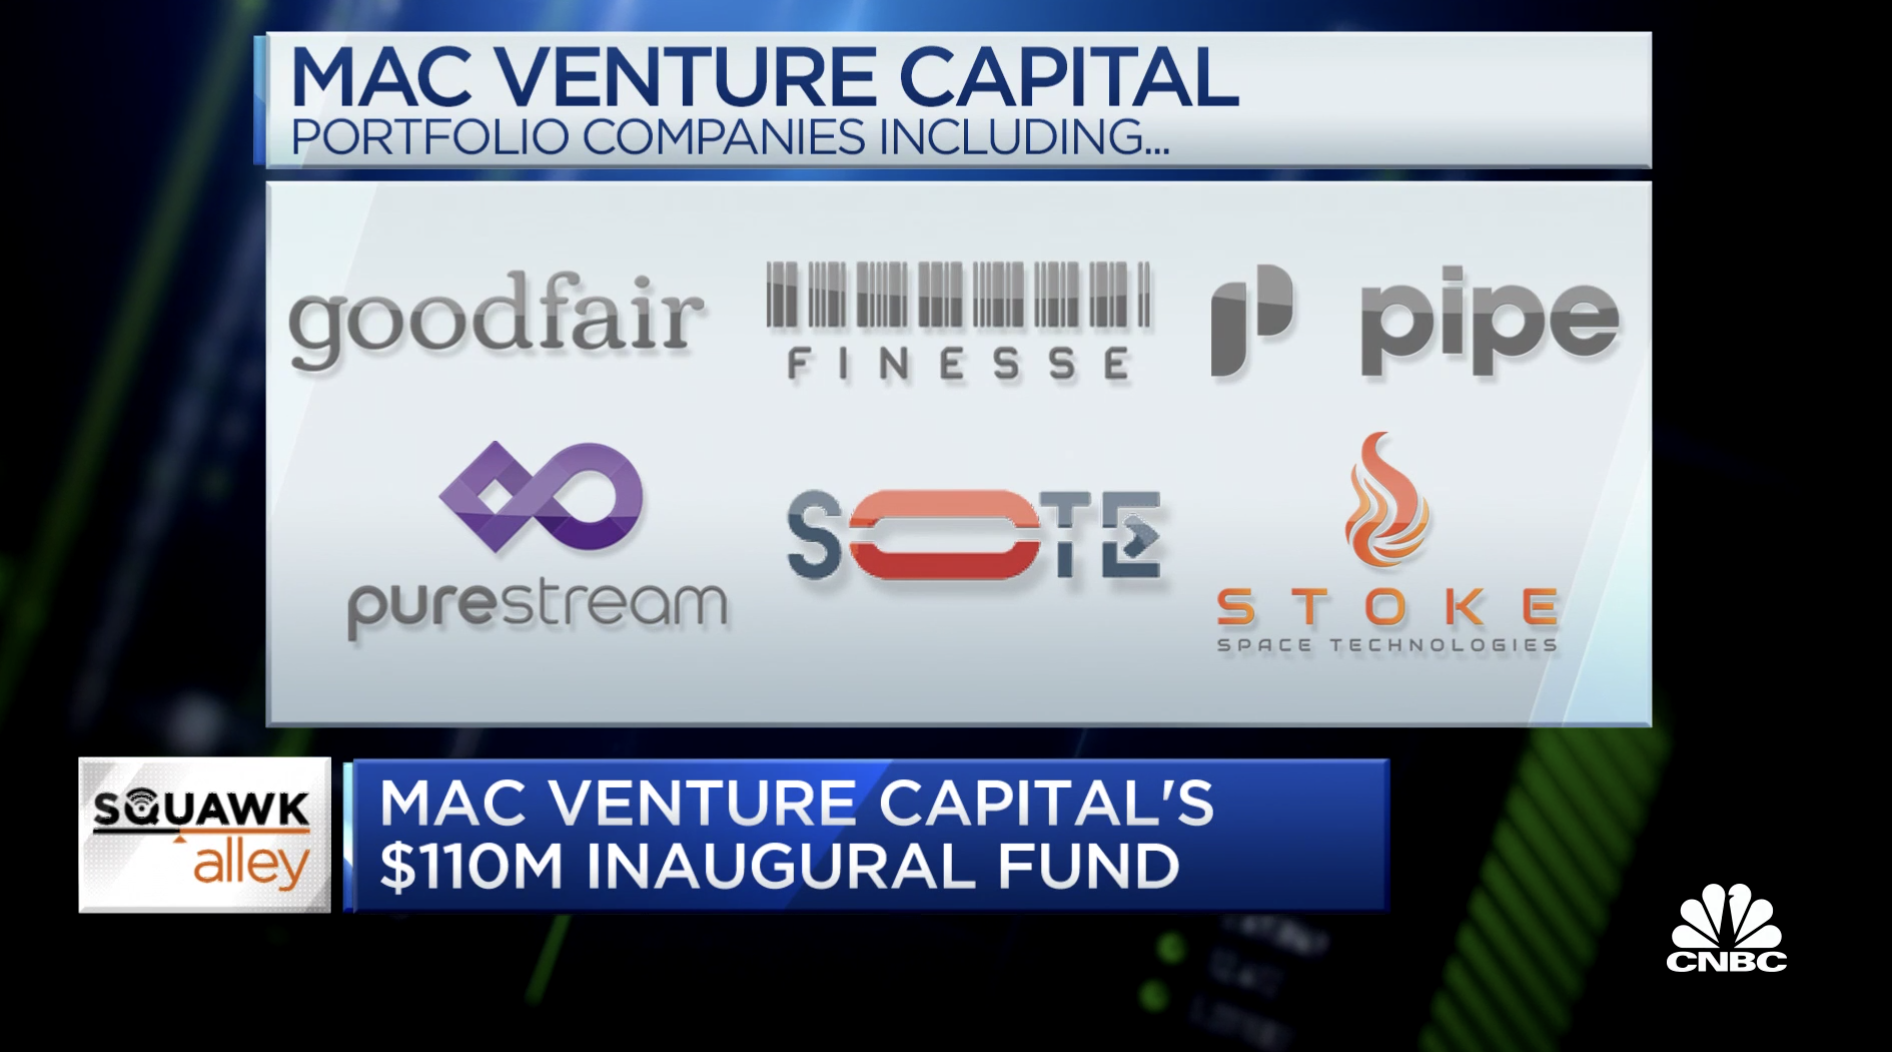 MaC Venture Capital's founders on their $110 million inaugural fund